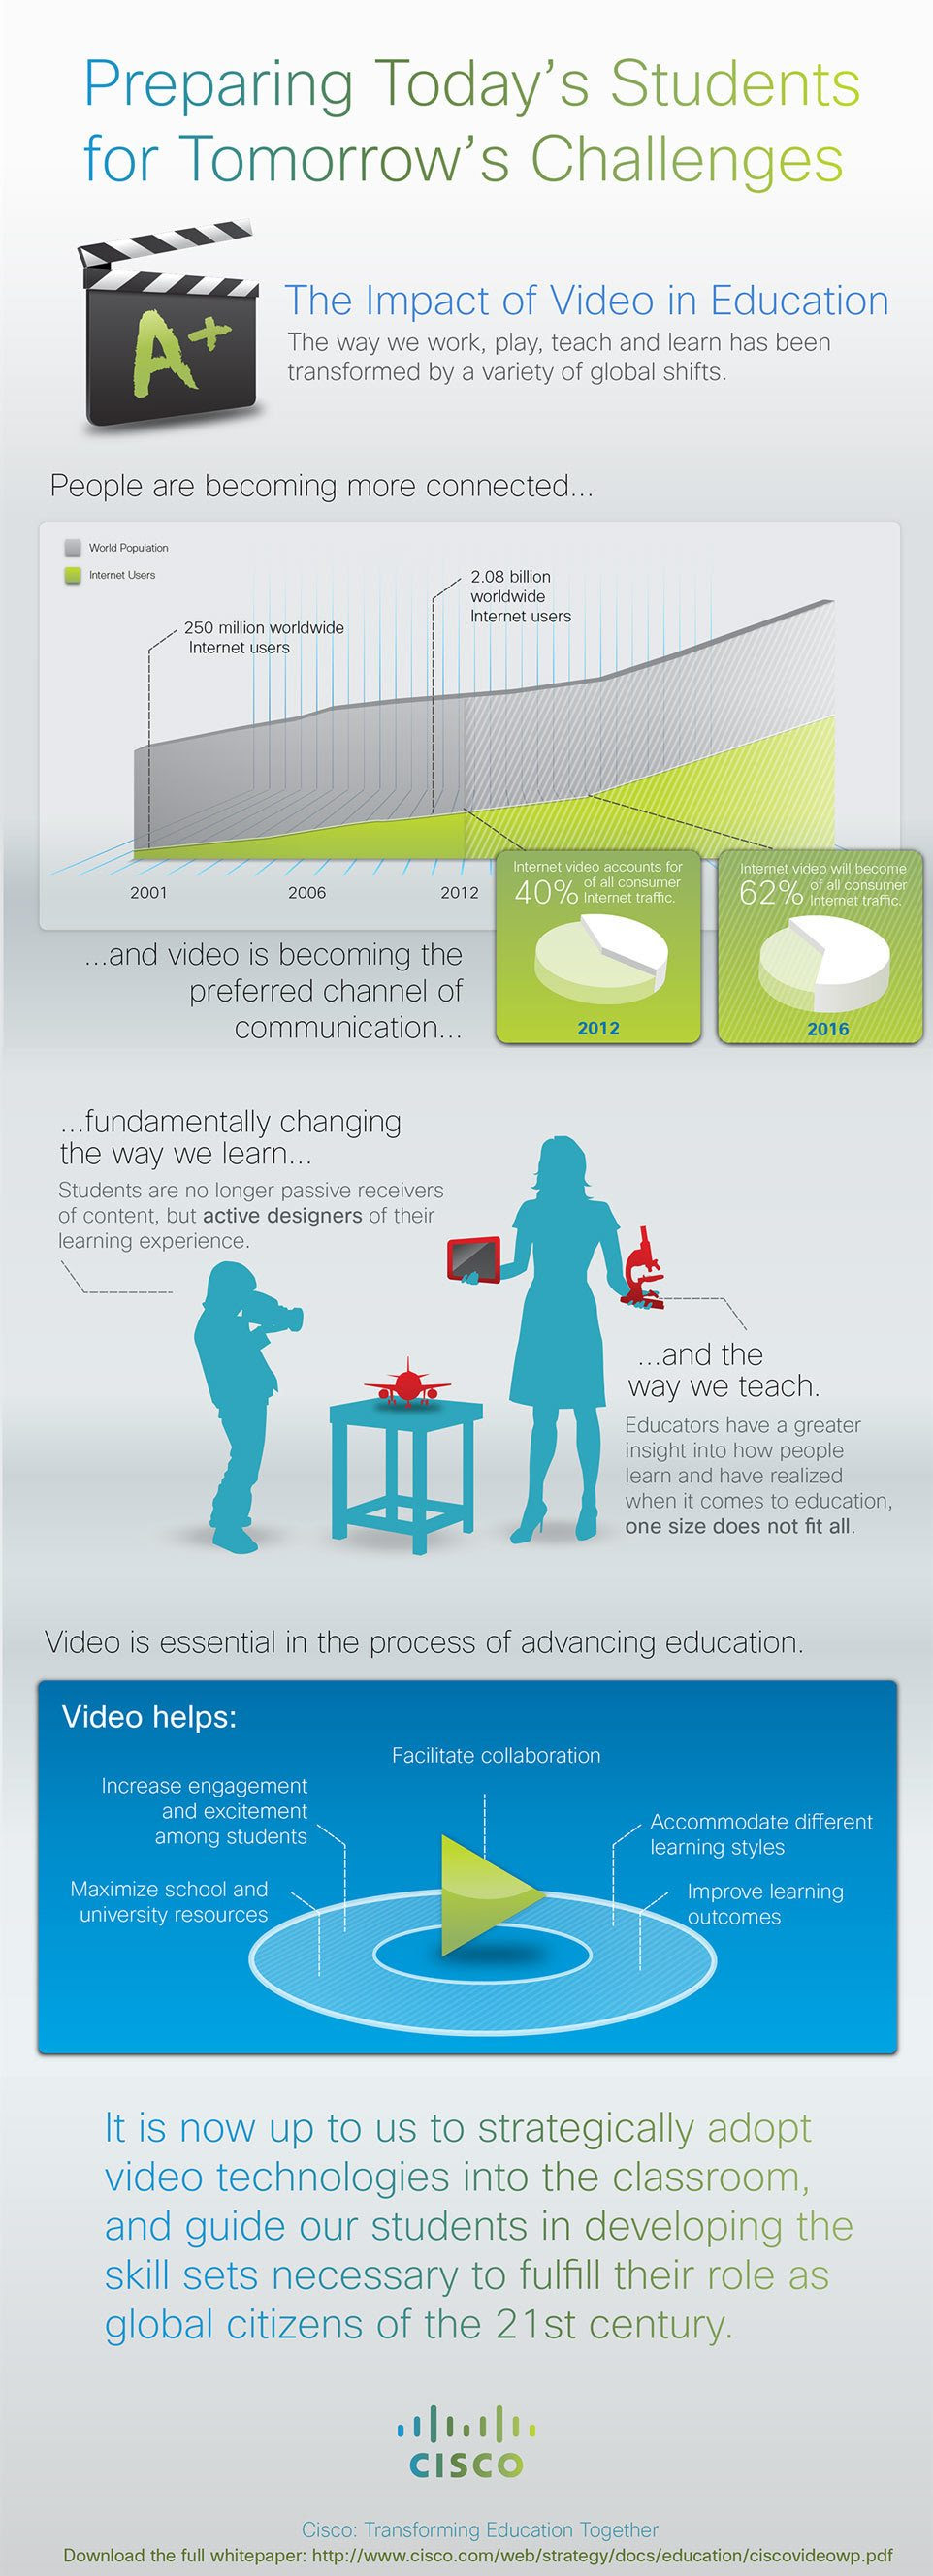 The-Impact-of-Video-in-Education-Infographic